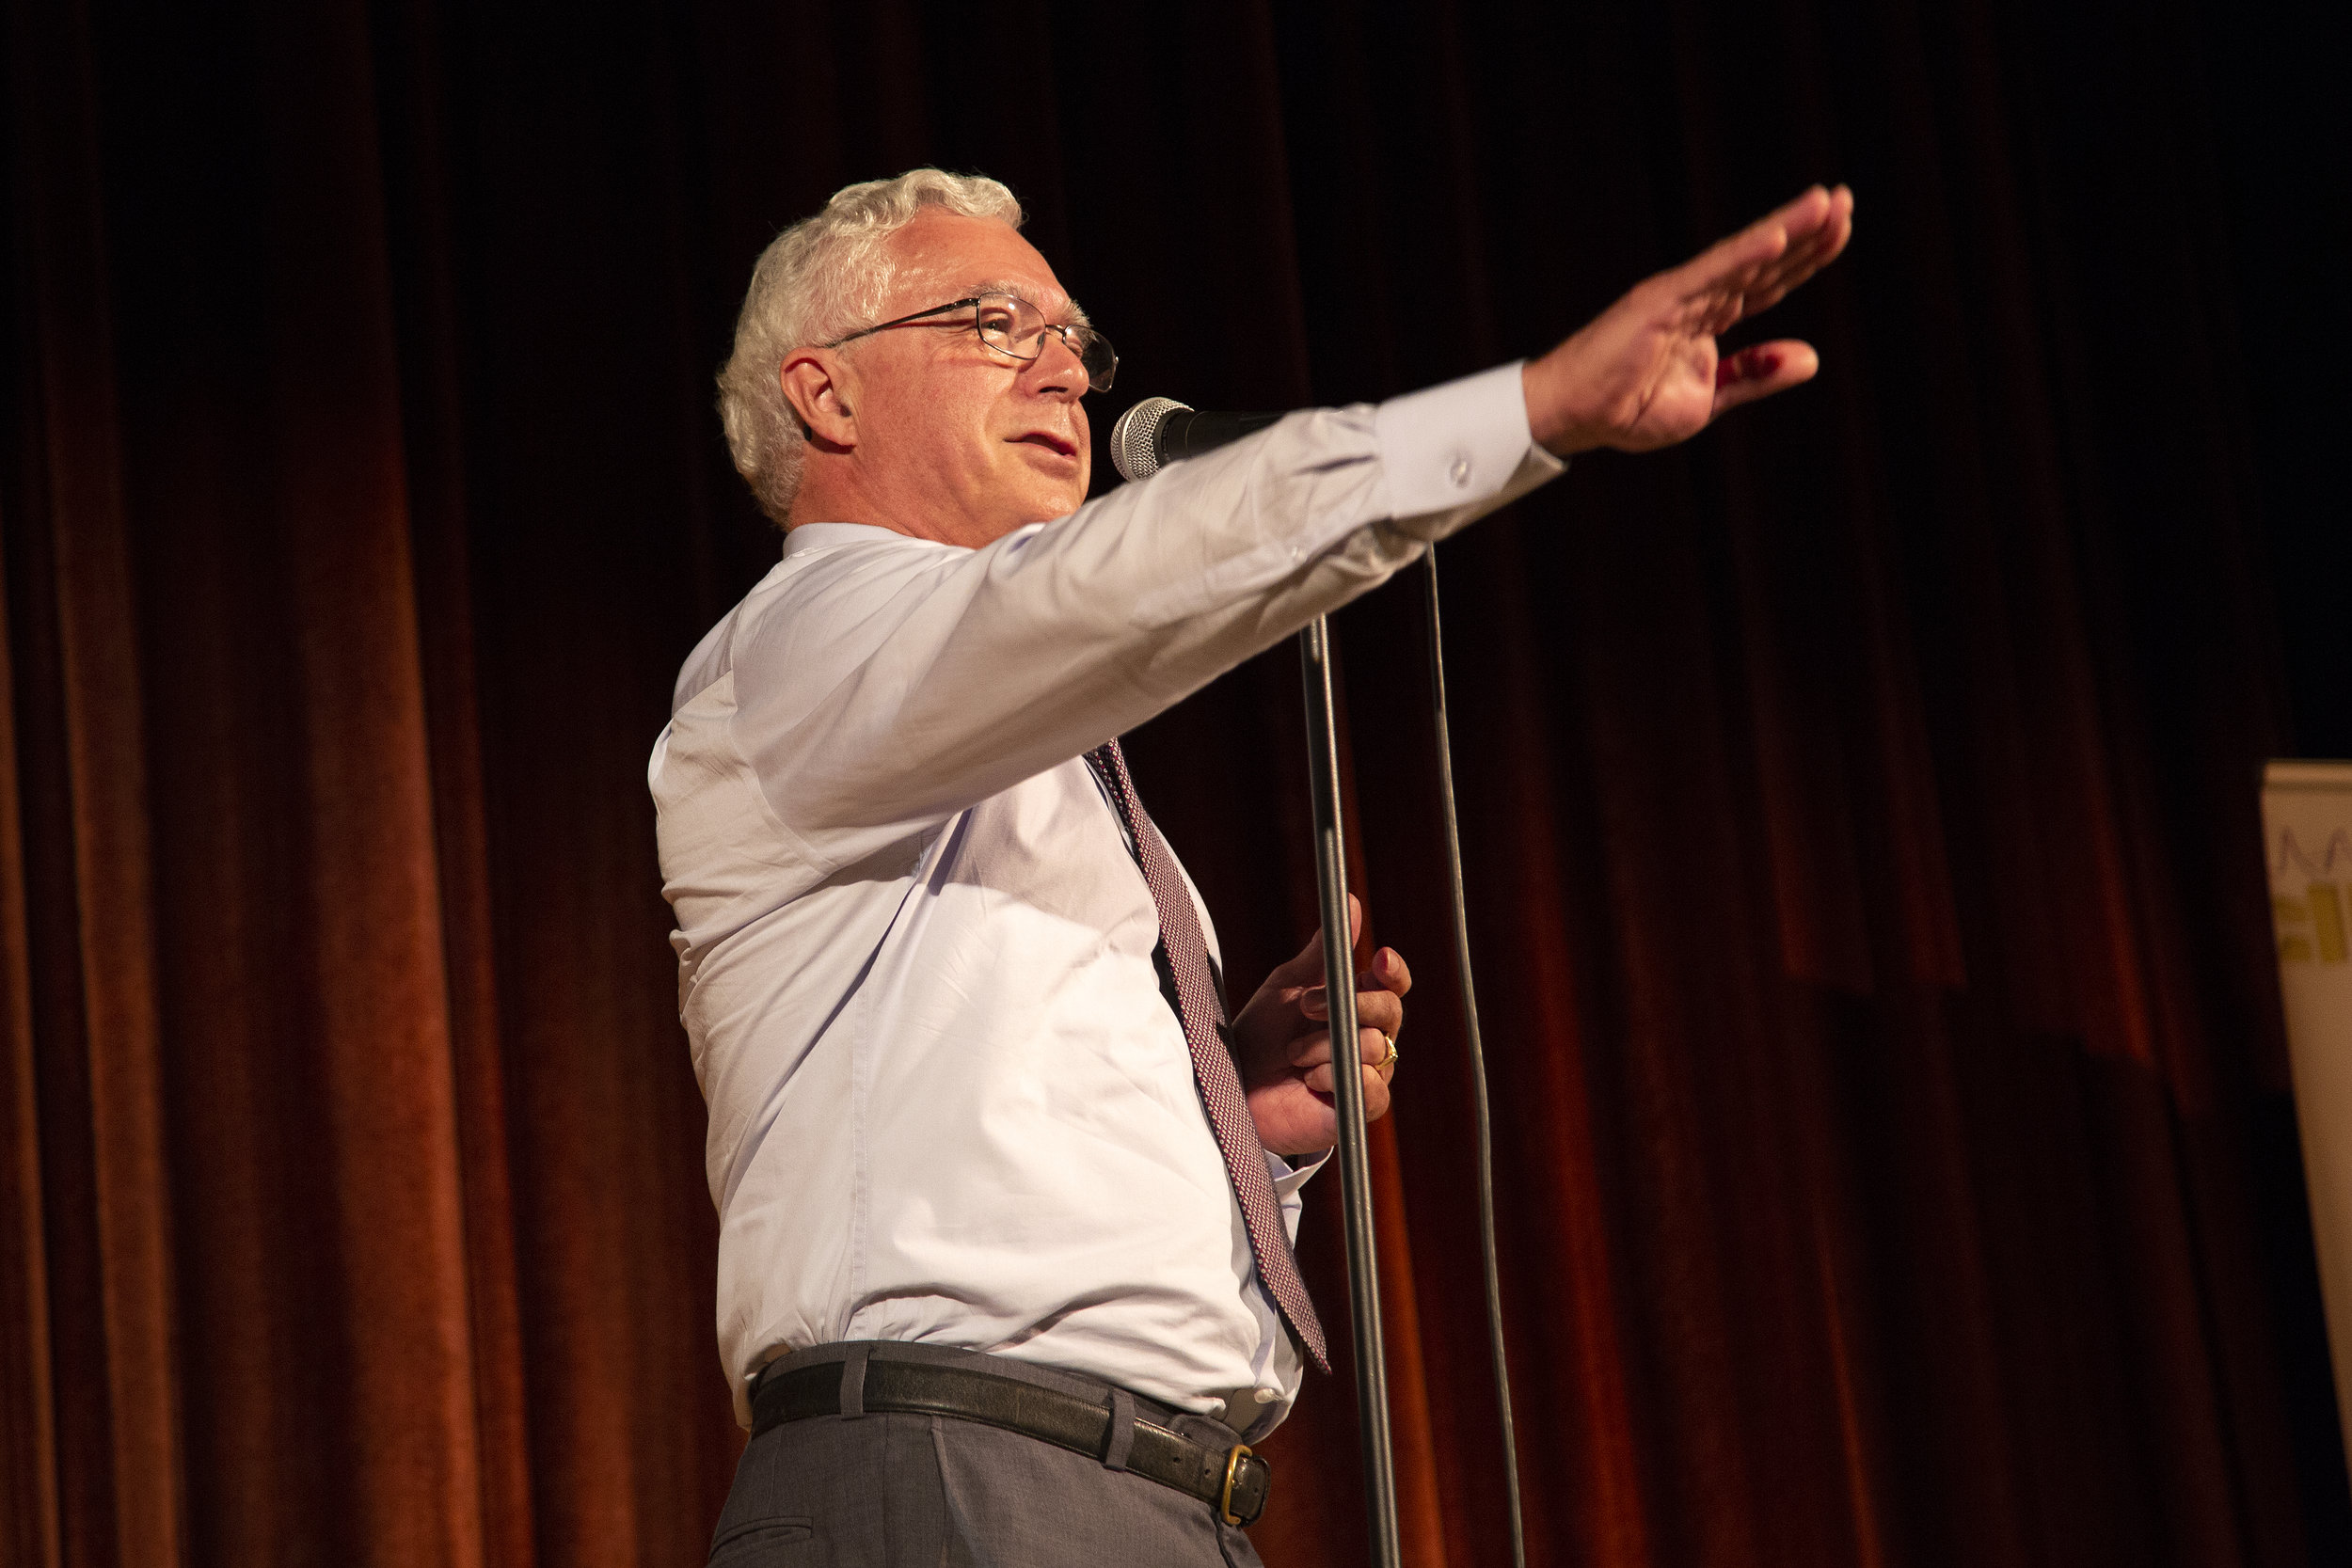 Dana Strout shares his story with the Story Collider audience at The Criterion Theater in Bar Harbor, ME in September 2018. Photo by Mike Perlman.